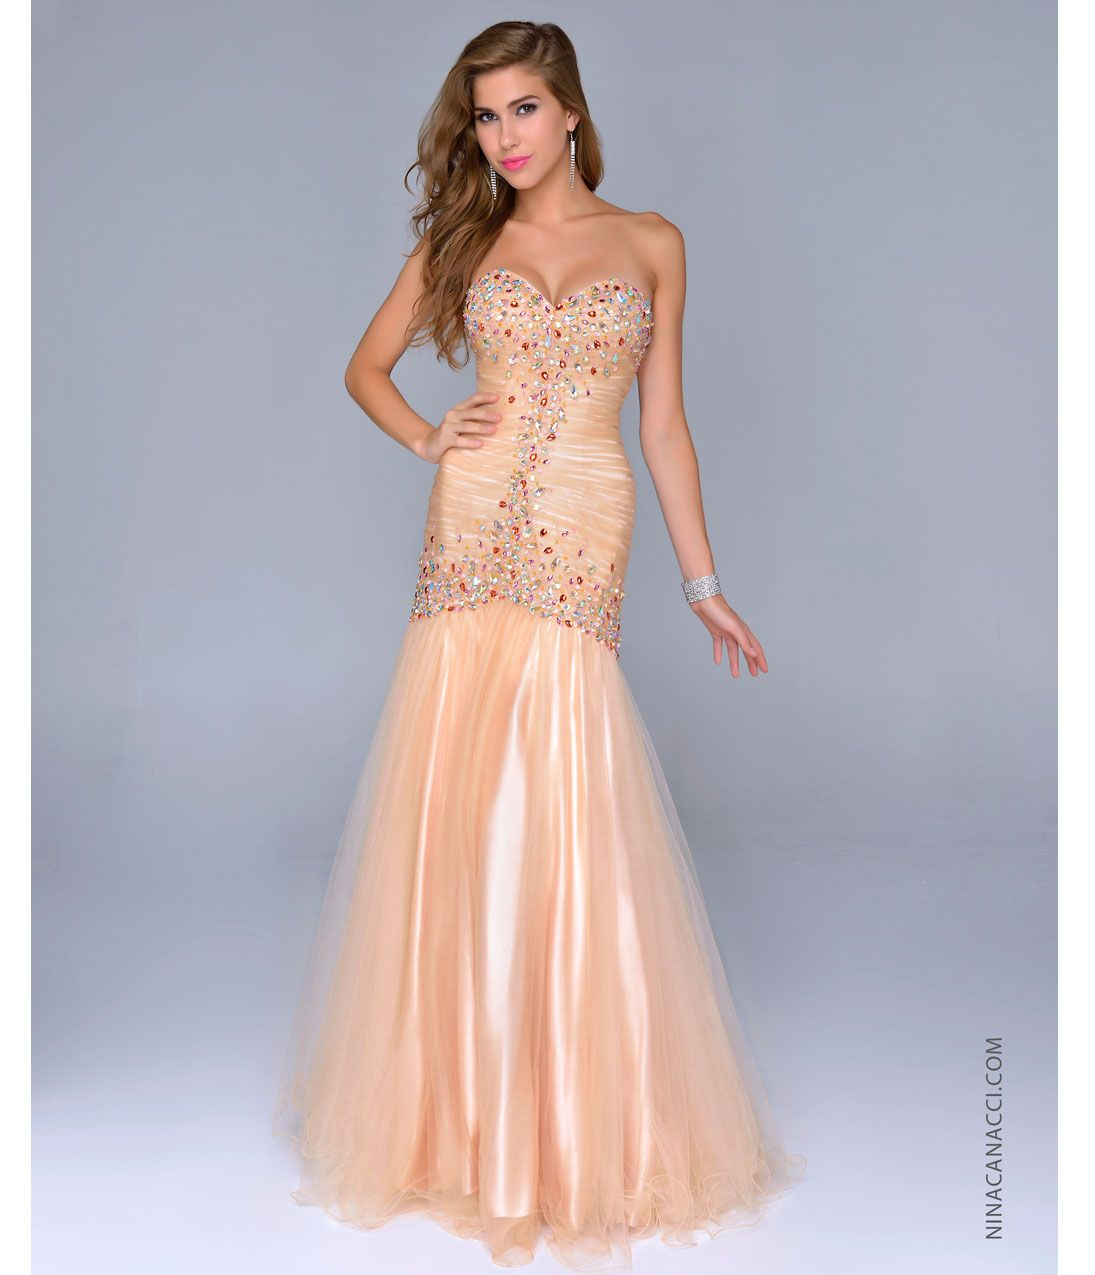 Nina Canacci 2014 Prom Dresses - Gold Tulle & Beaded Strapless ...